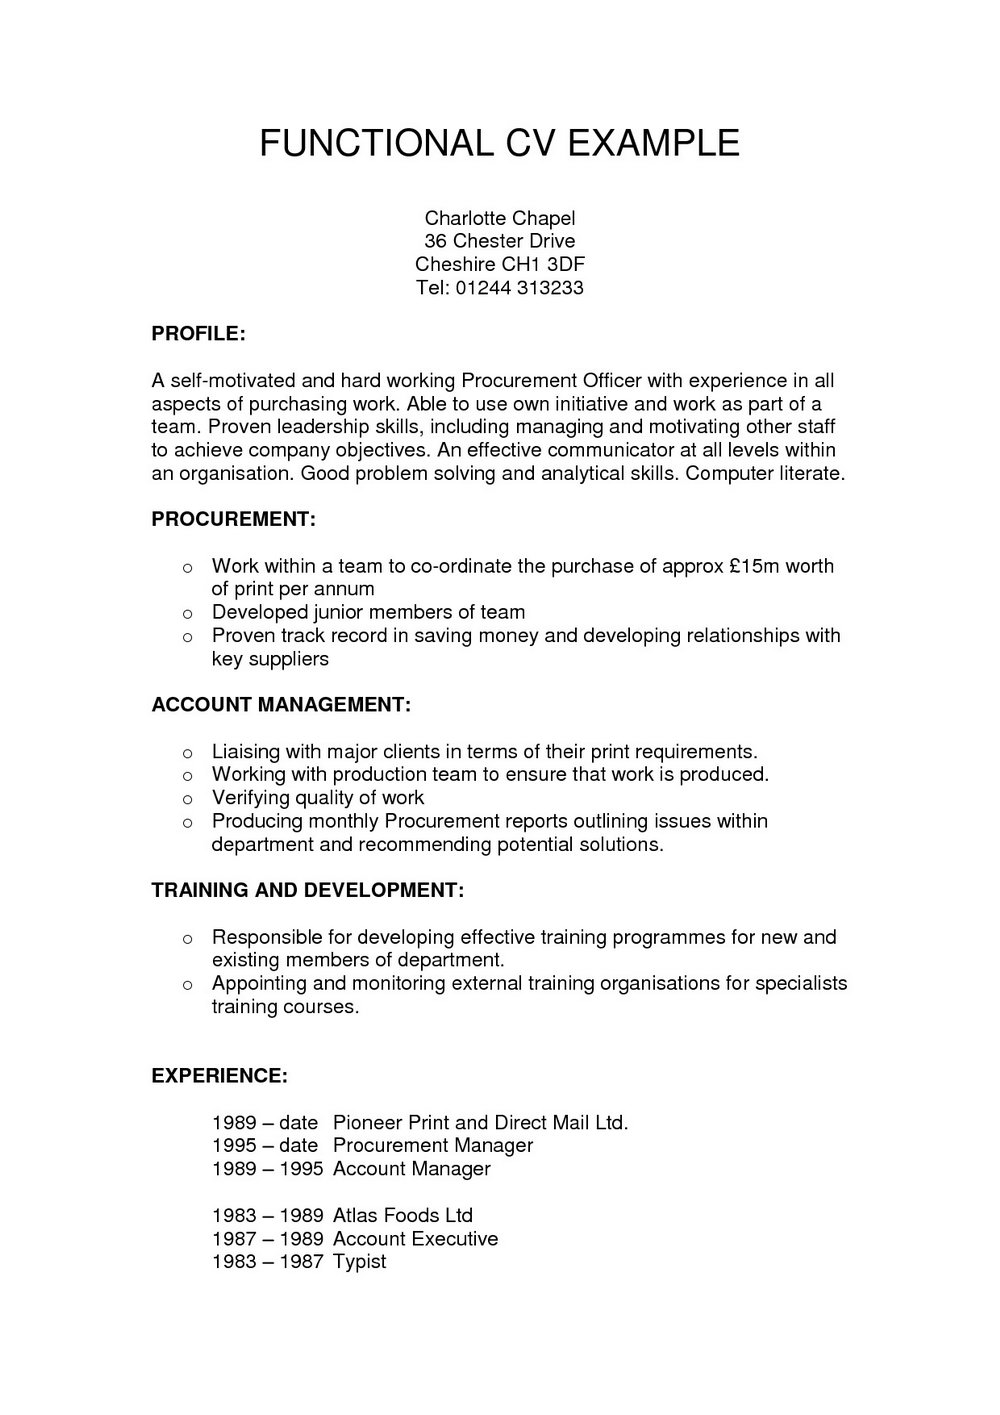 Free Functional Resume Template Word - Resumes #MjY1 ...